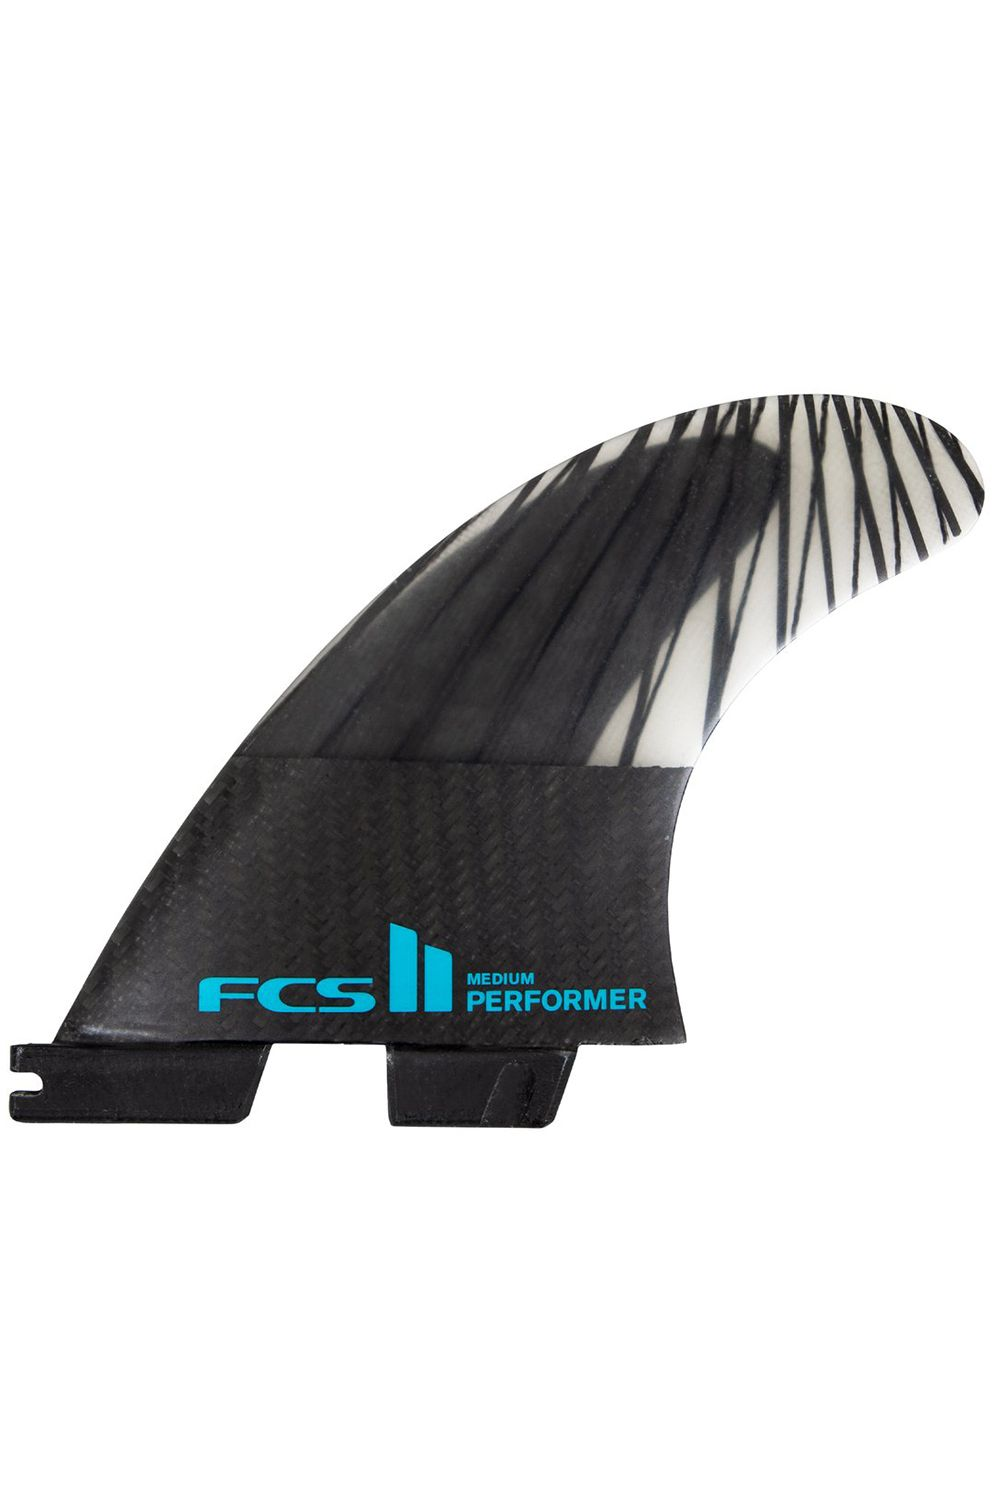 Fcs Fins II PERFORMER PC CARBON LARGE BLACK/TEAL TRI Tri